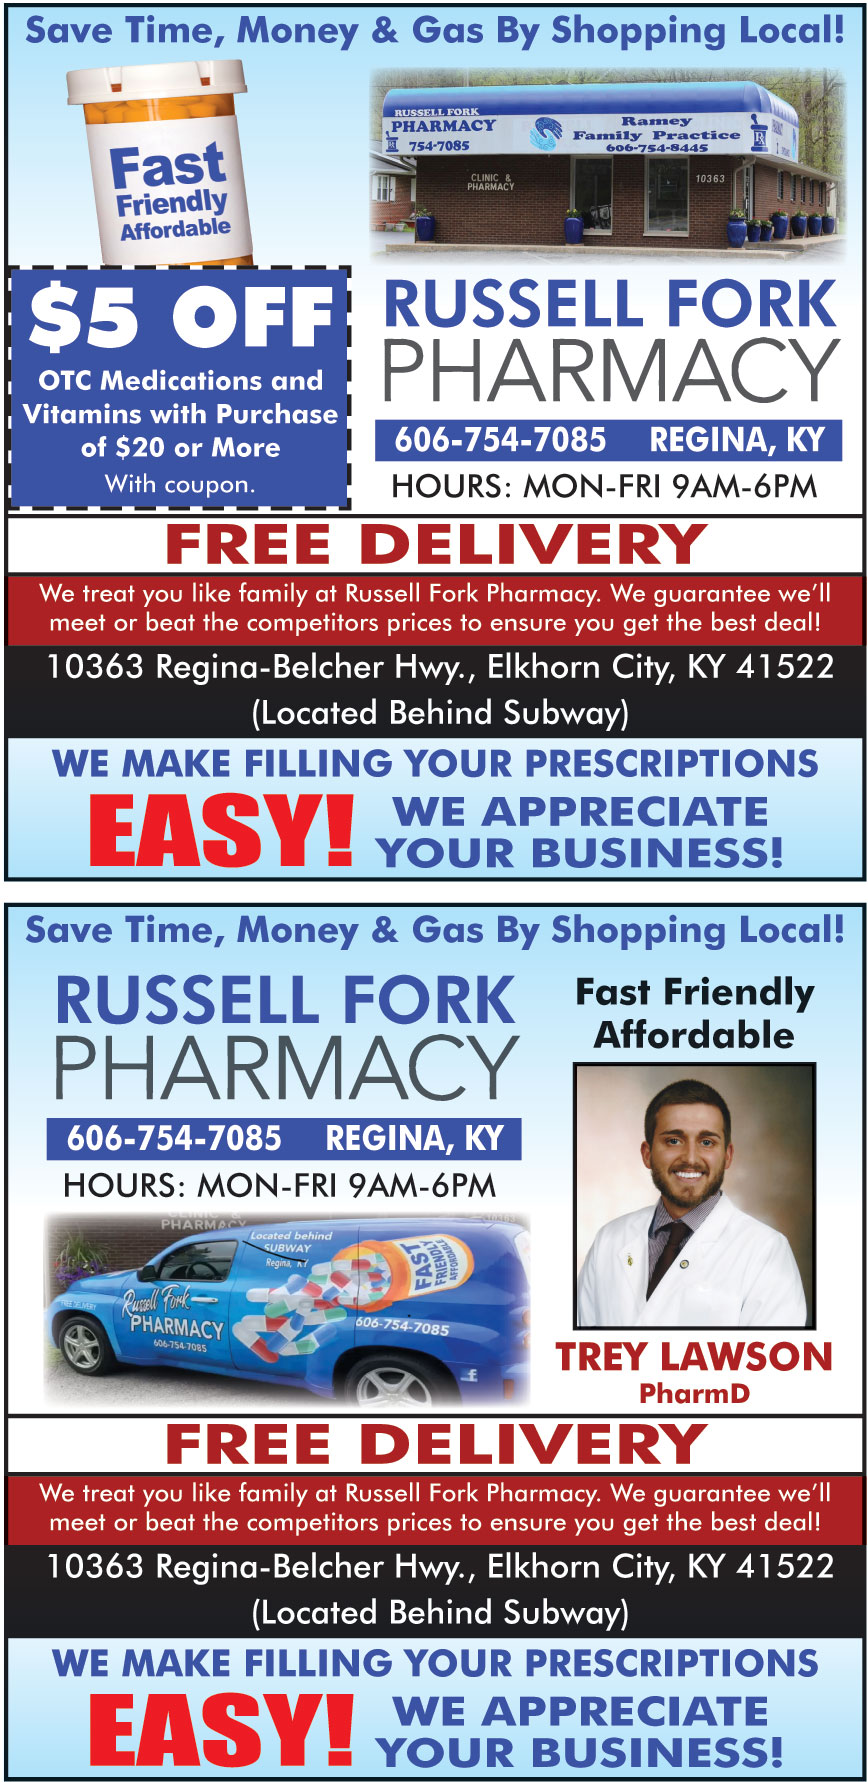 RUSSELL FORK PHARMACY